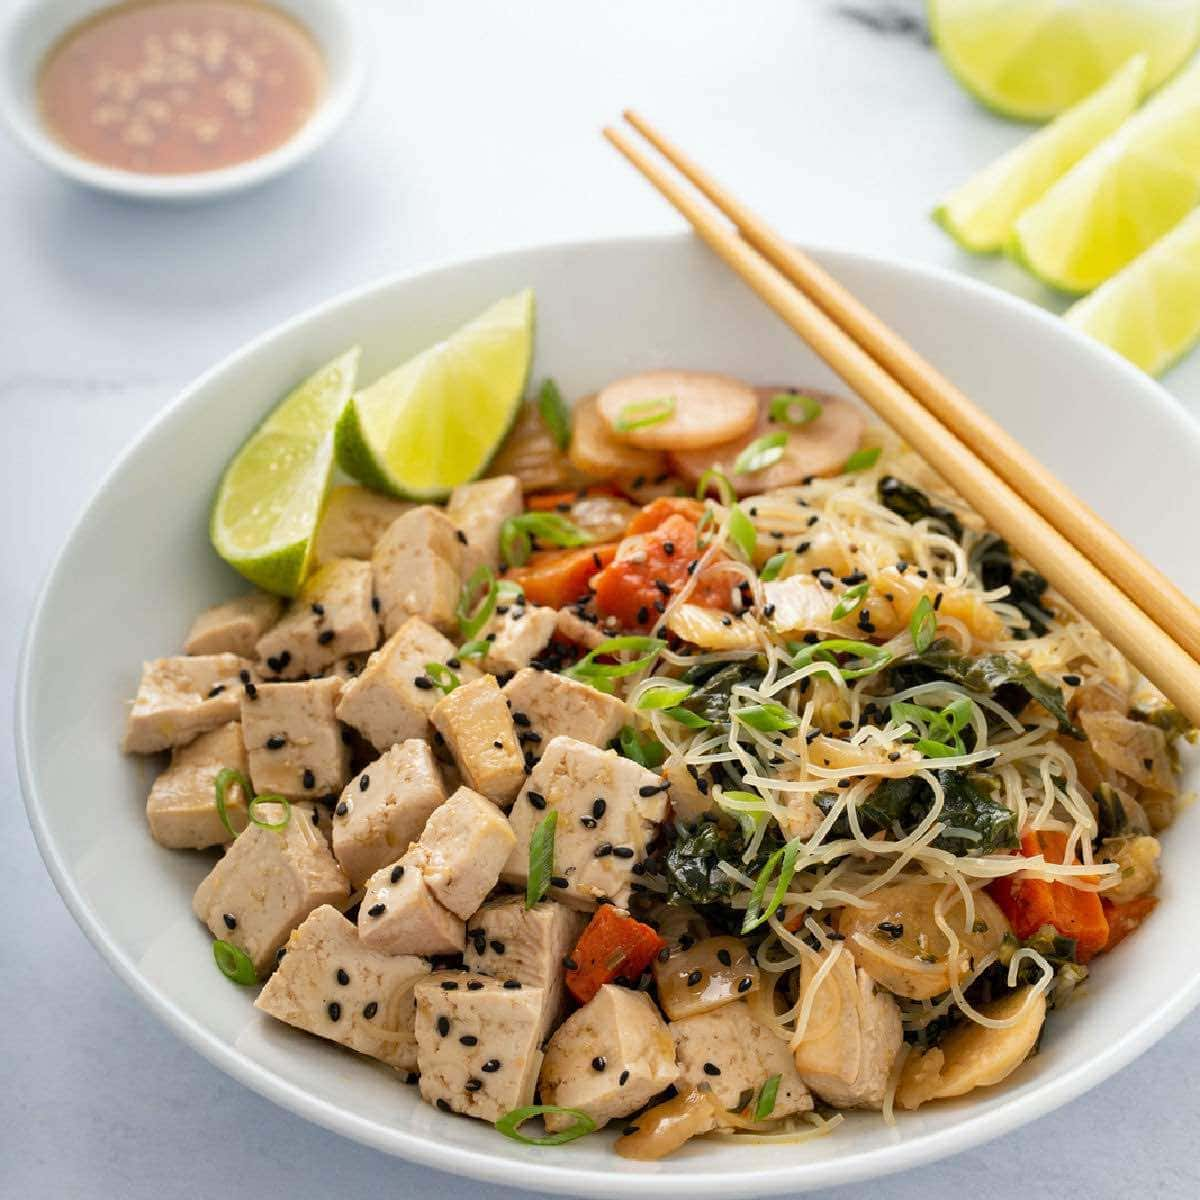 Low FODMAP meal delivery - chicken and vegetables in a white bowl with chopsticks on the rim of the bowl.